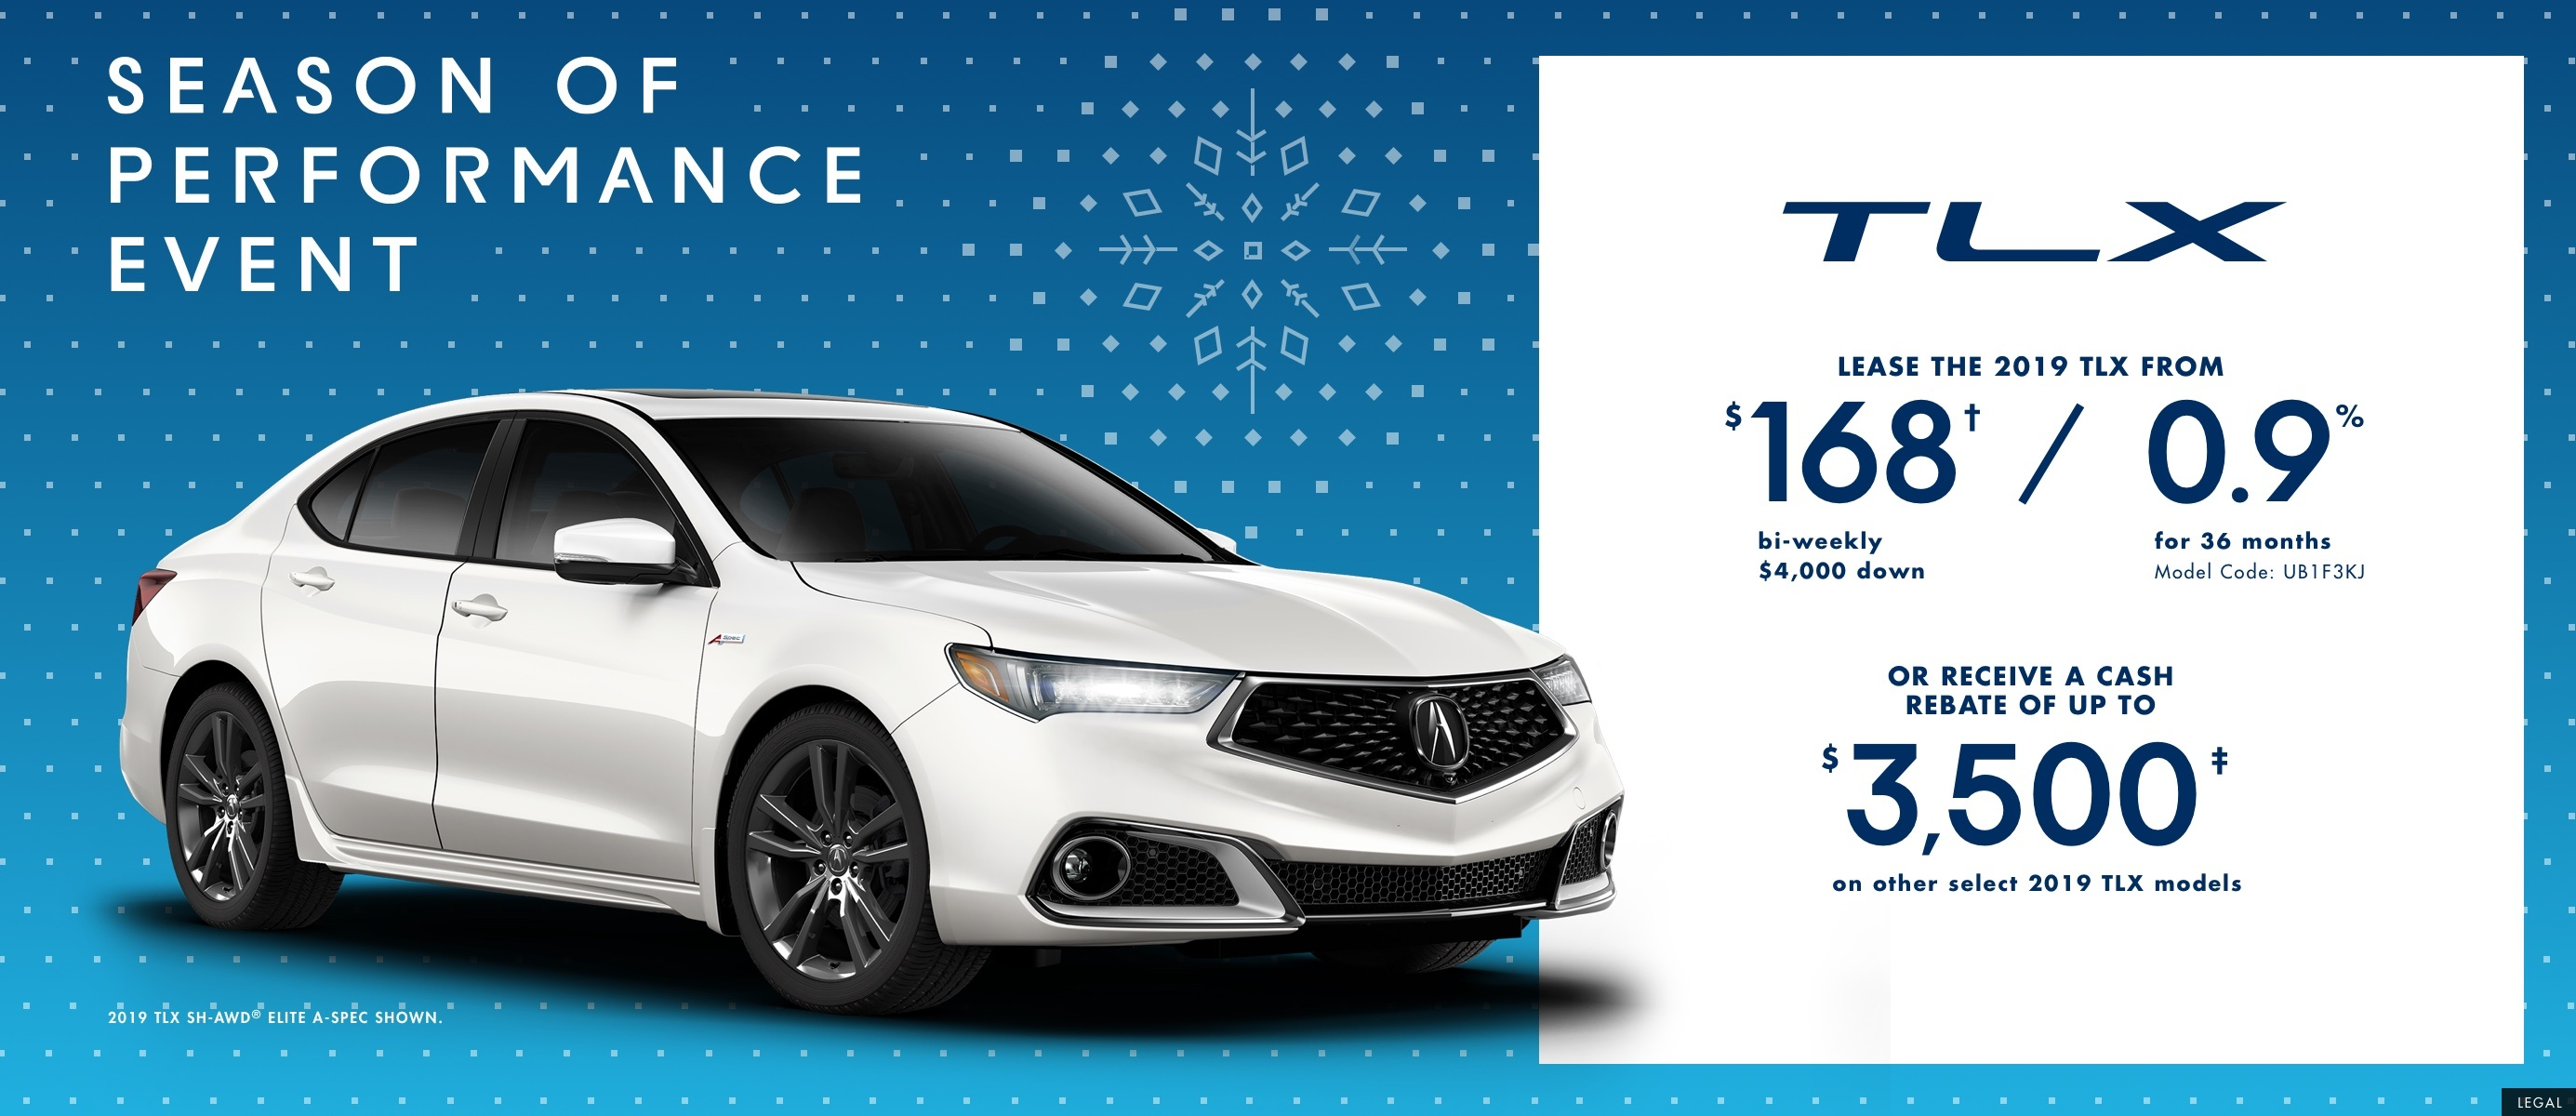 2019 Acura TLX | Season of Performance Event